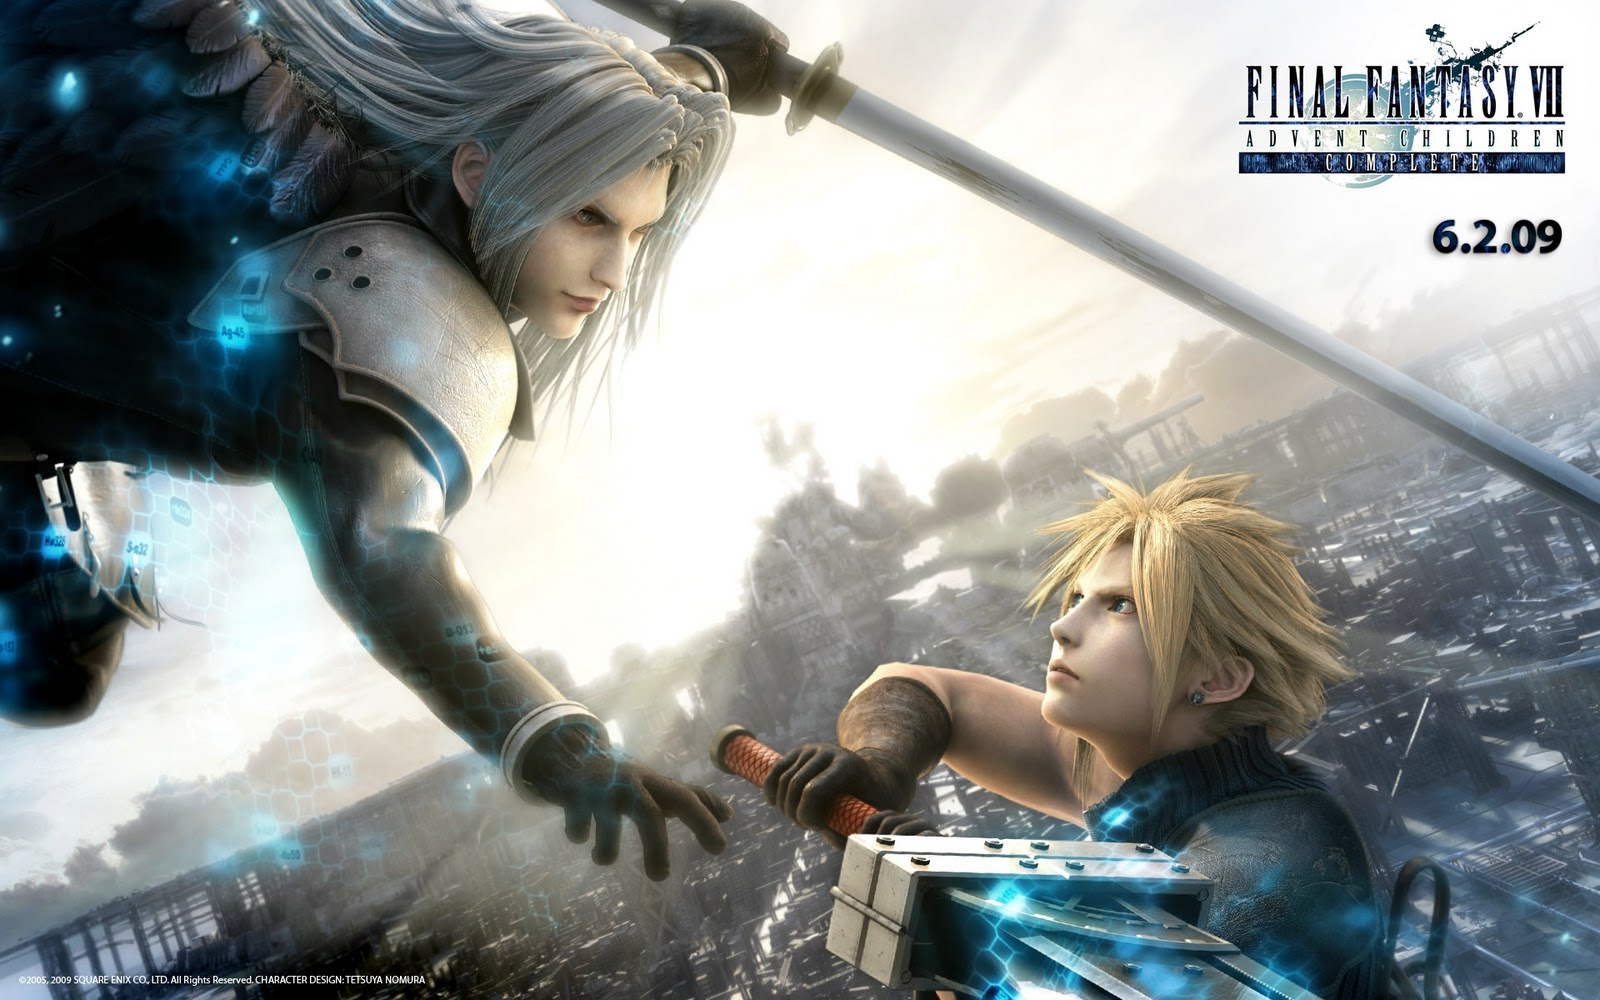 final fantasy hd wallpaper: final fantasy vii advent children complete